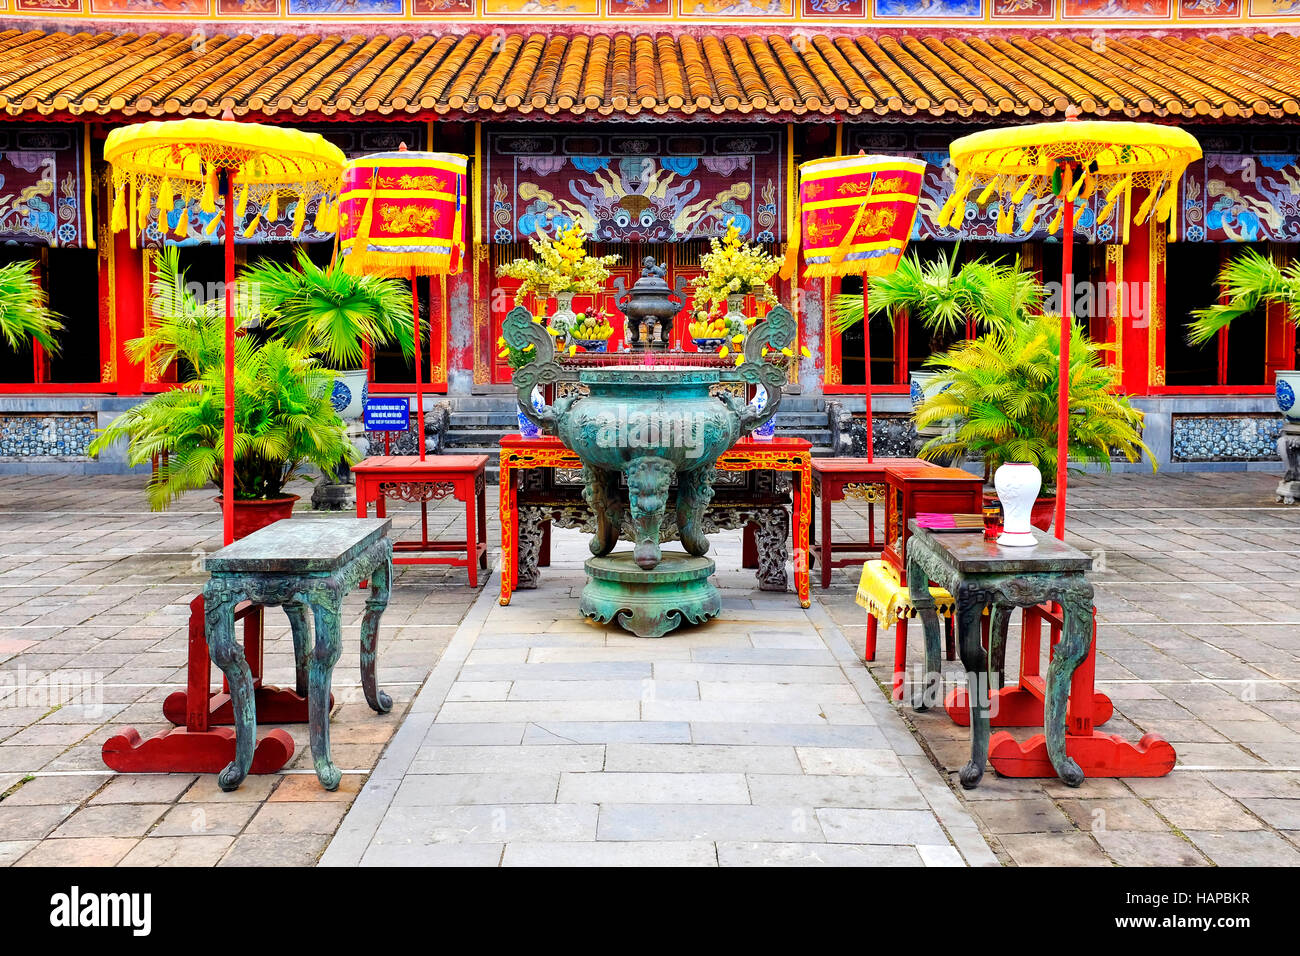 Dynastic urn in The To Mieu Temple in the Hue Imperial city, Hue, Vietnam - Stock Image